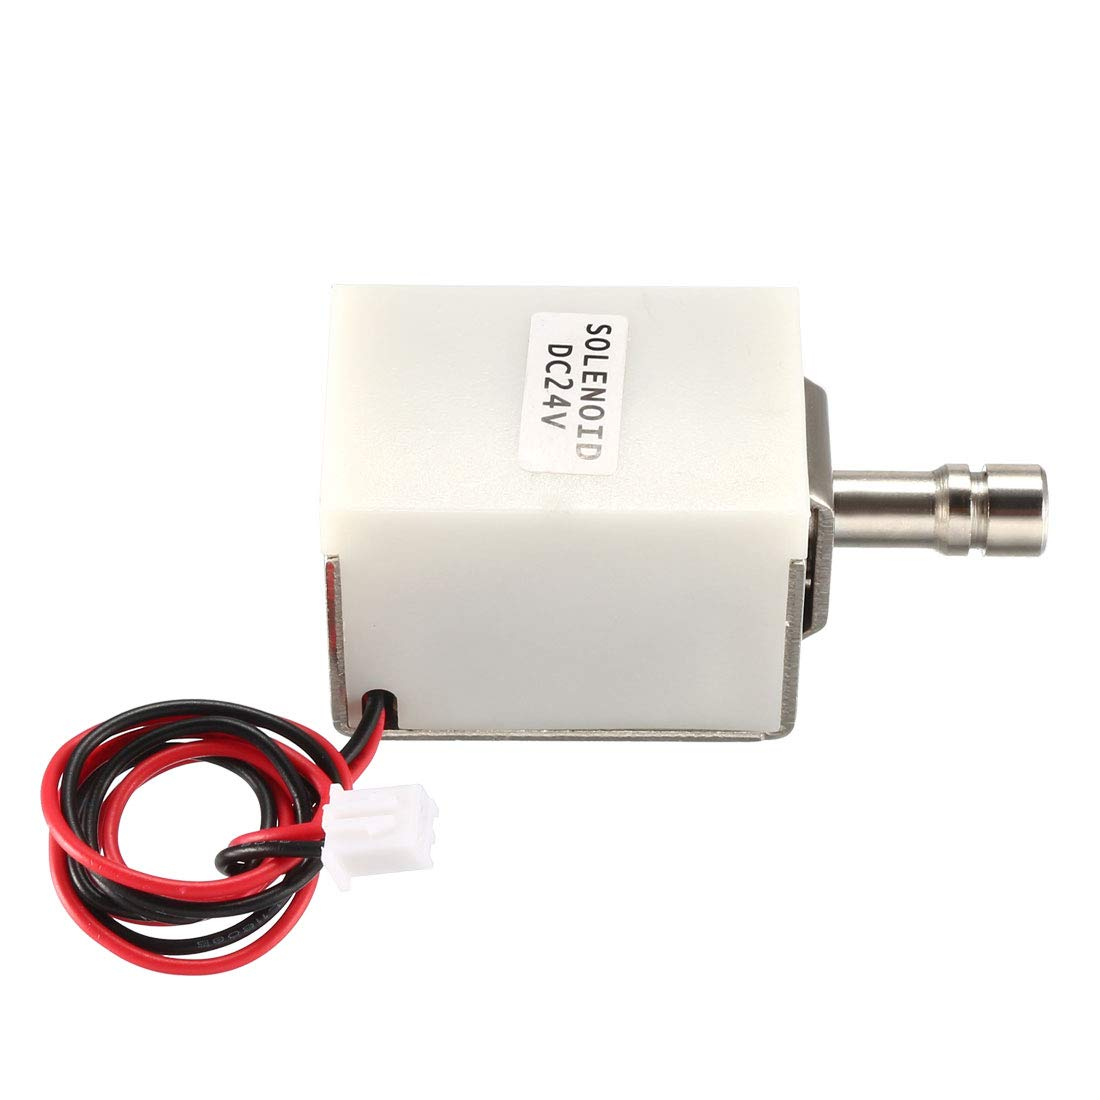 uxcell DC 24V 1A 9.6mm Electromagnetic Solenoid Lock Push Pull Type for Electirc Door Lock